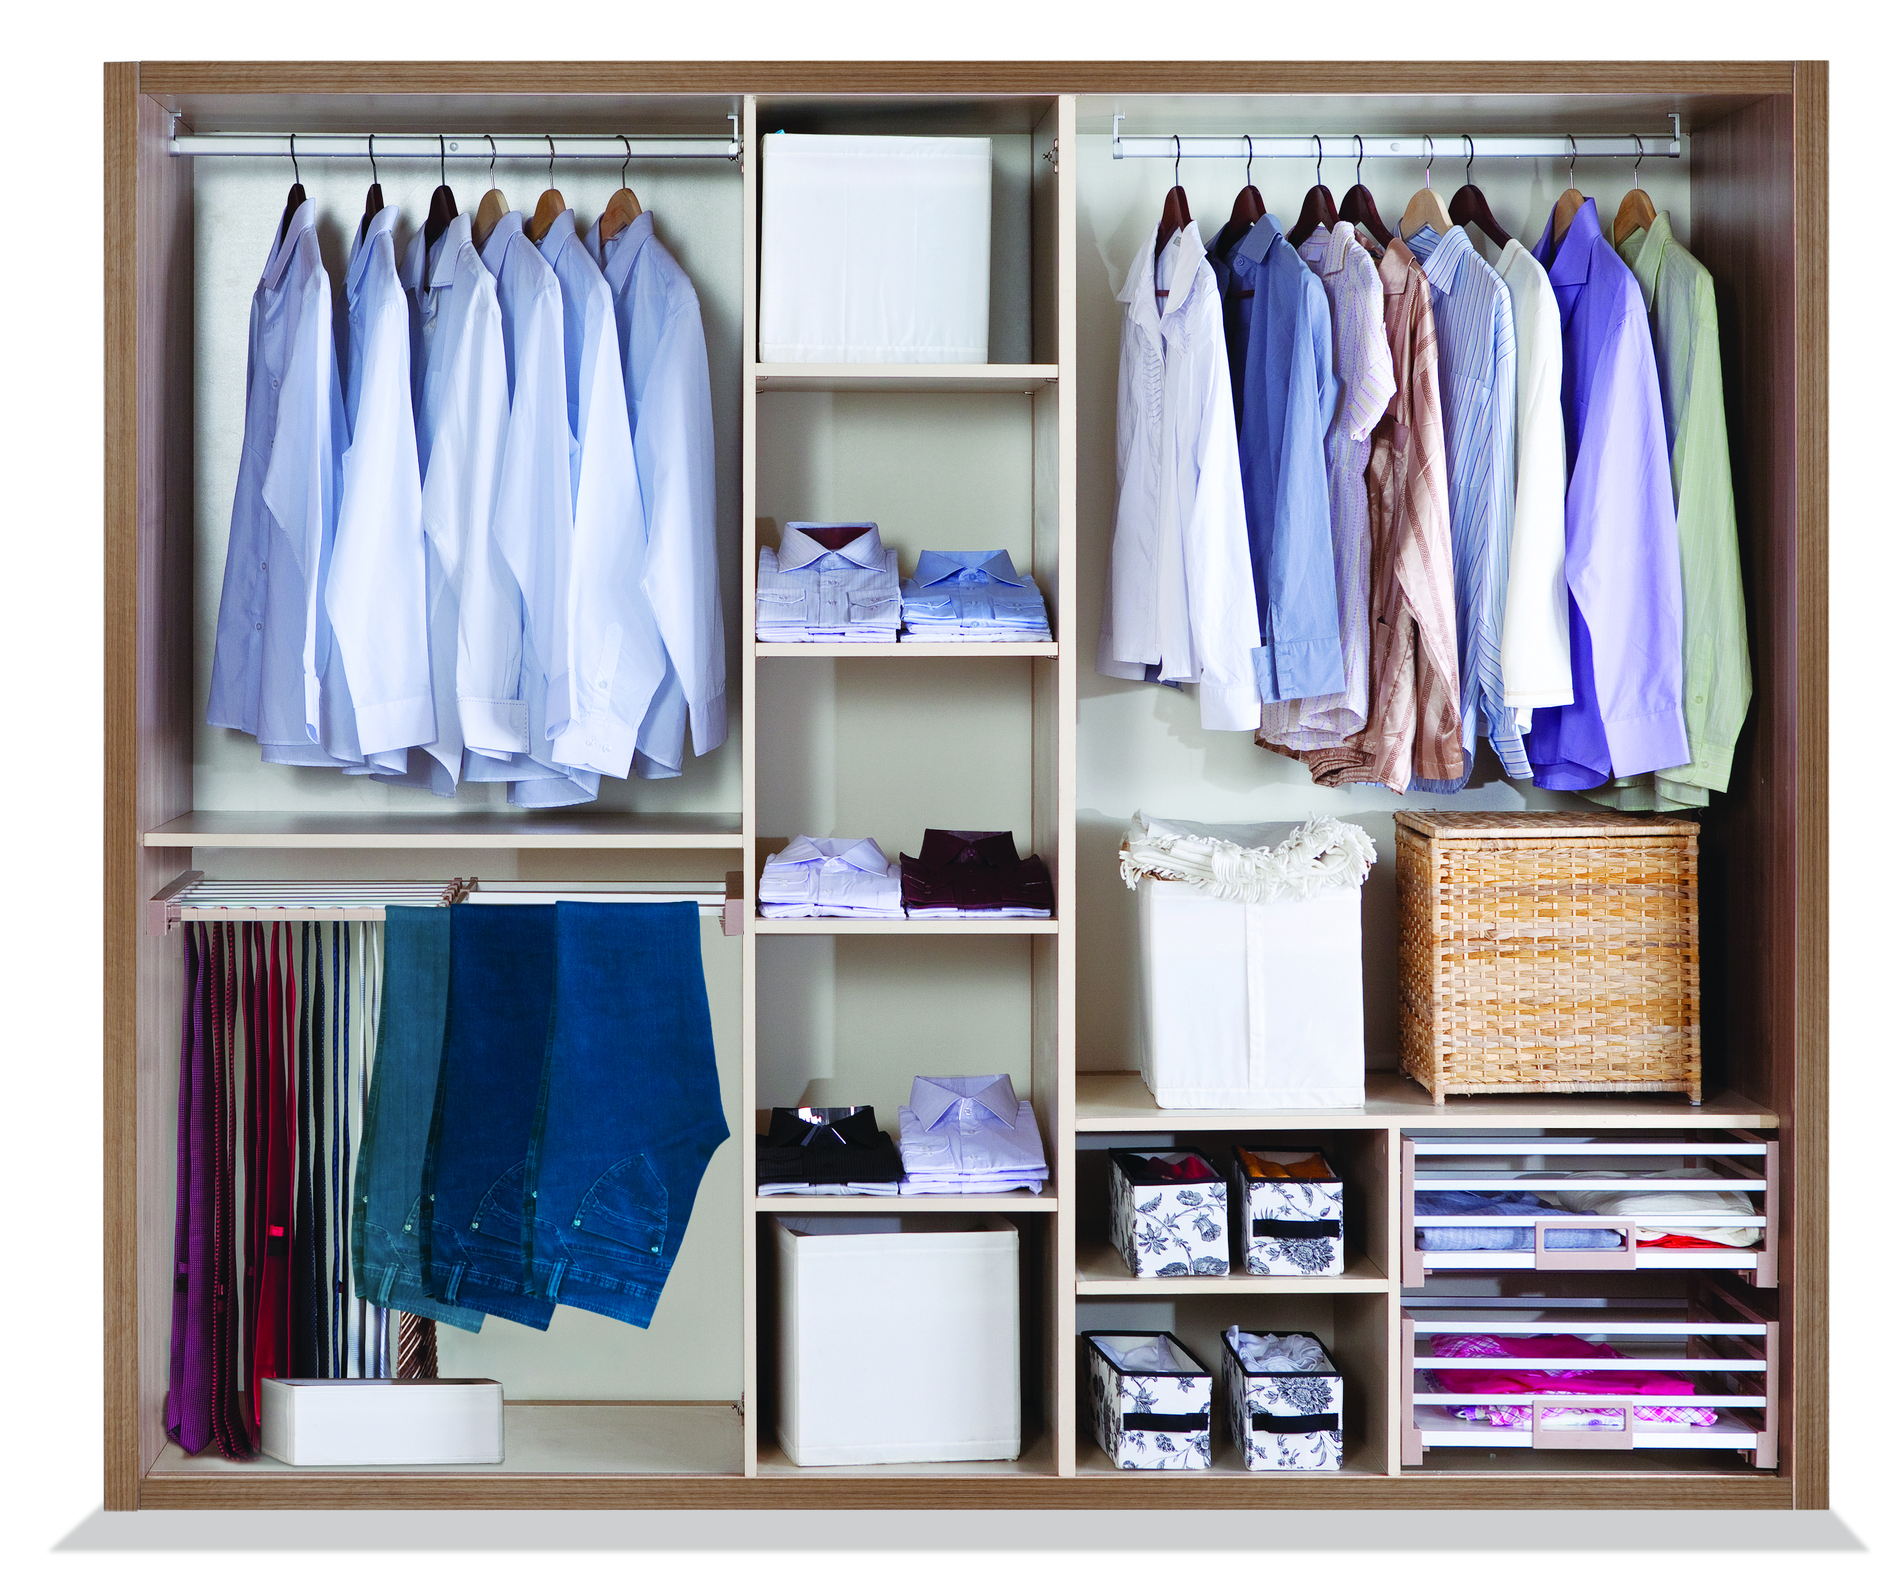 Closet Detox - No one likes a messy closet. You can't find what you need and don't know what you have.  During a closet detox, Charae thoroughly goes thru each item in your closet and recommends items to part ways with, based on your style and goals for your wardrobe. Afterwards, your remaining clothes and accessories are organized by color & style. Now you'll be able to see clearly what you have and what you need. You may even discover some new pieces you forgot you had!